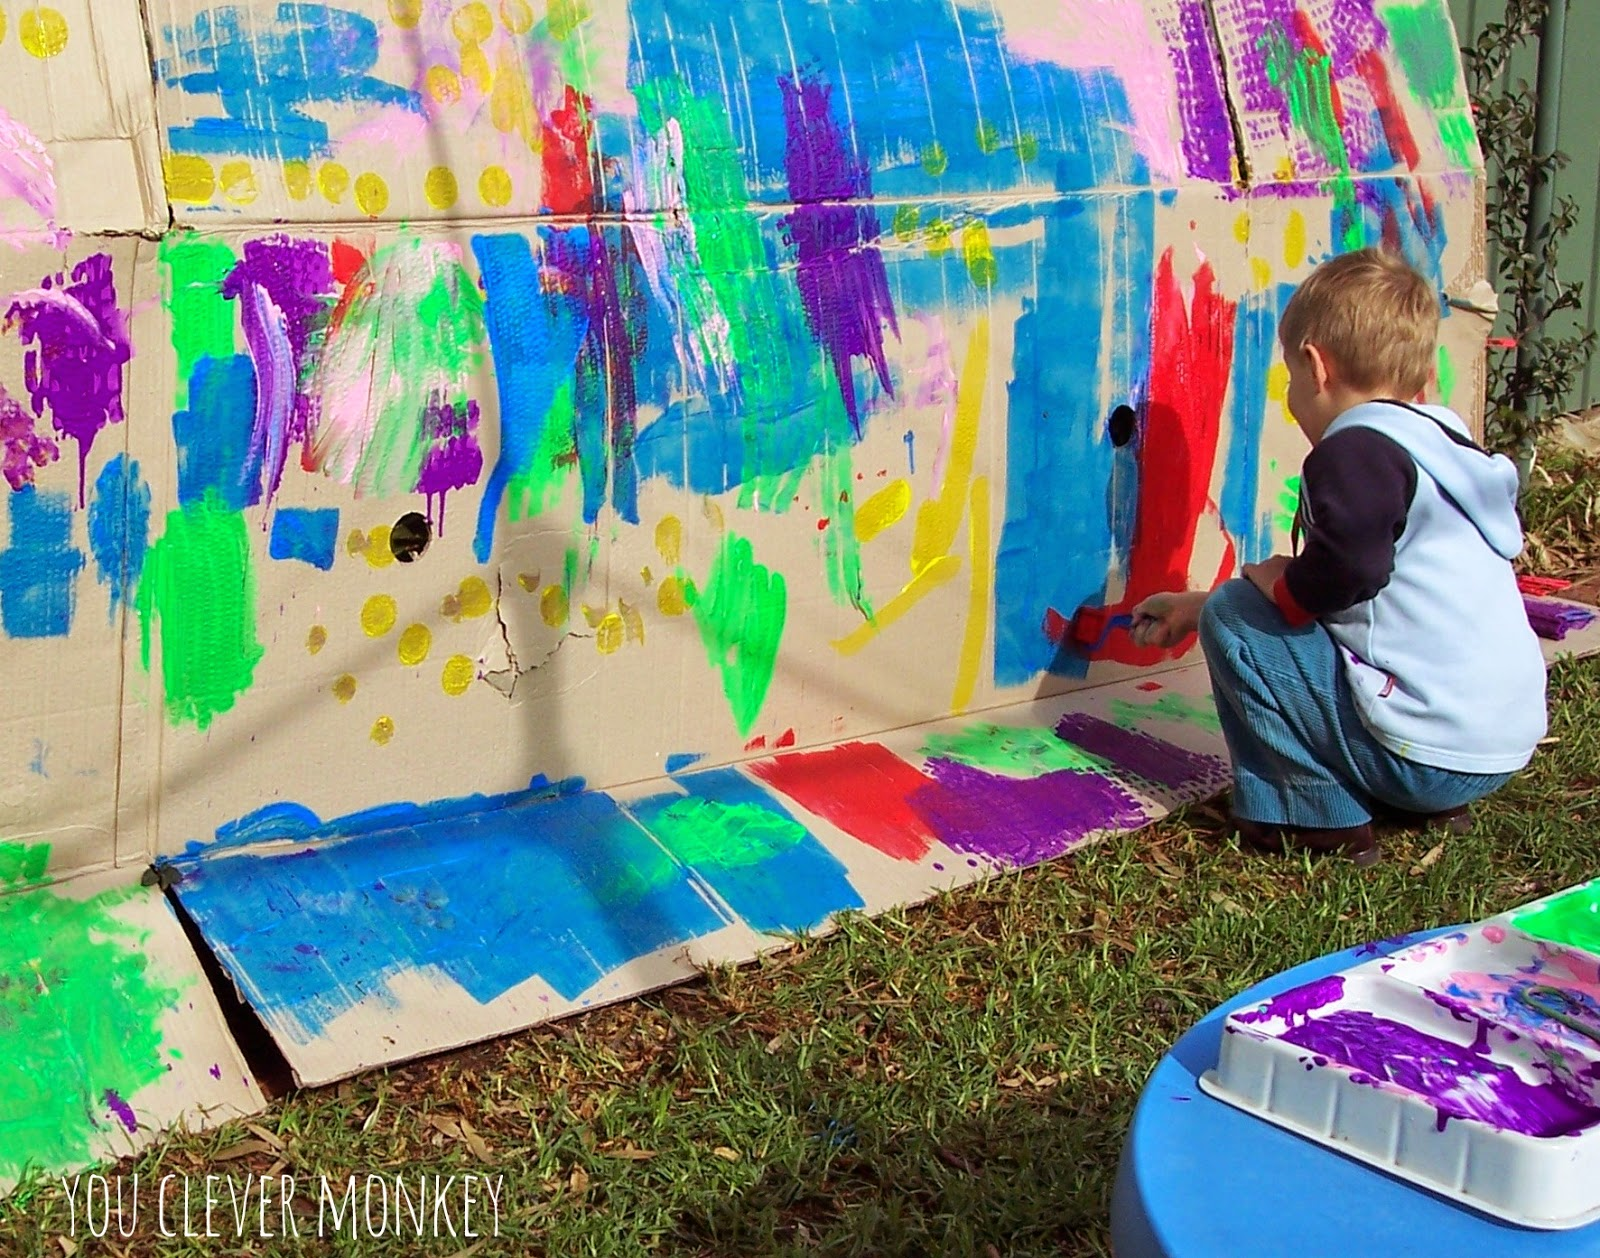 Big art 15 ideas for big art projects you clever monkey for Cardboard activities for toddlers